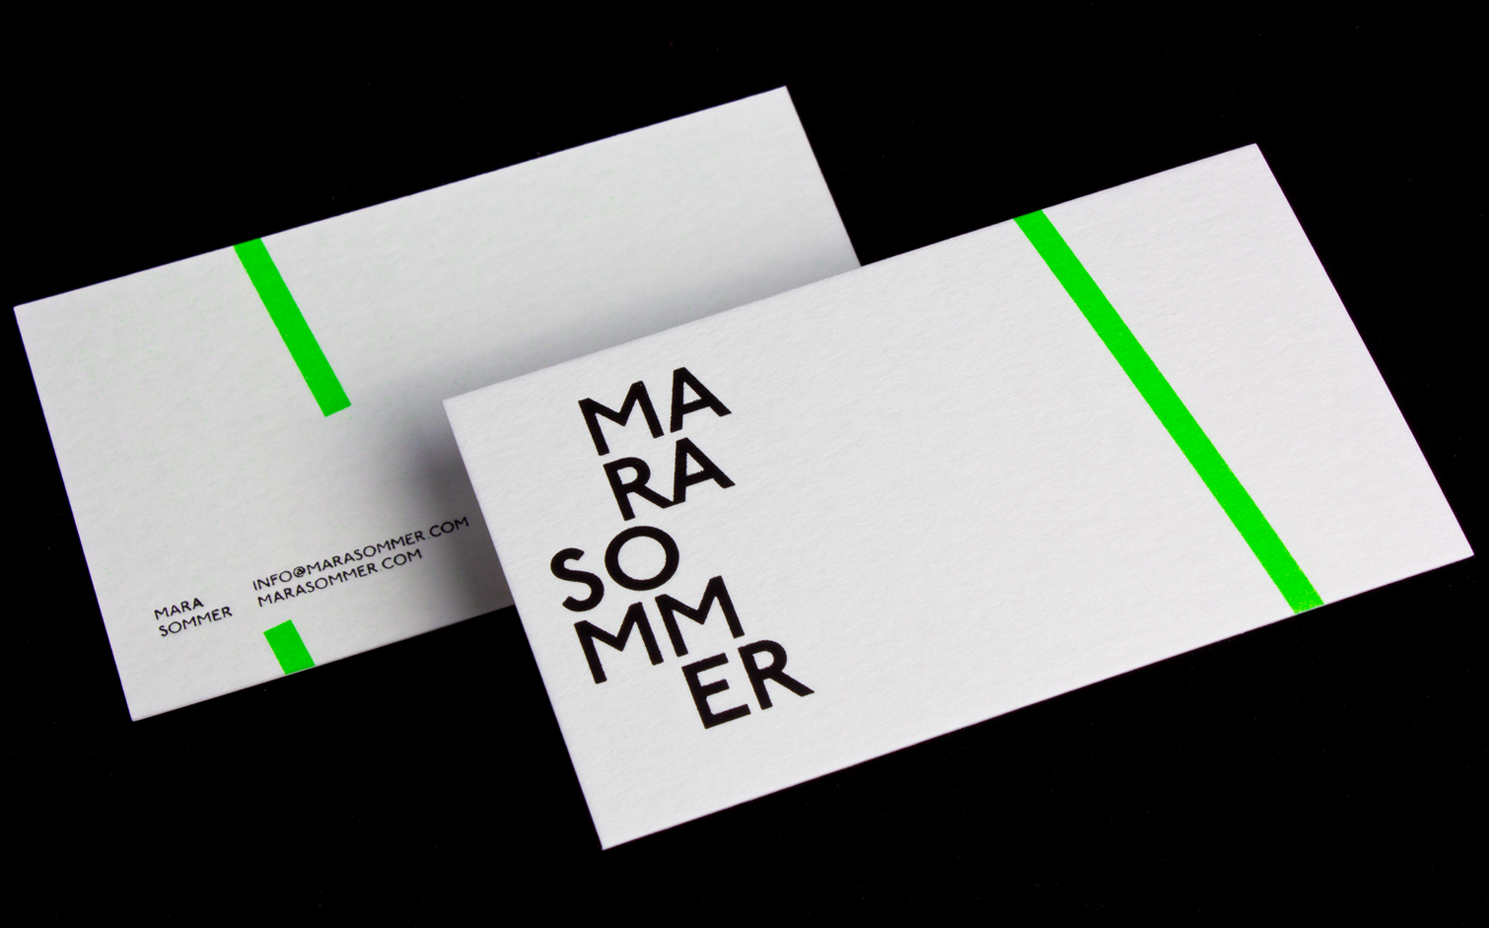 Mara Sommer Business Cards | Logick Print